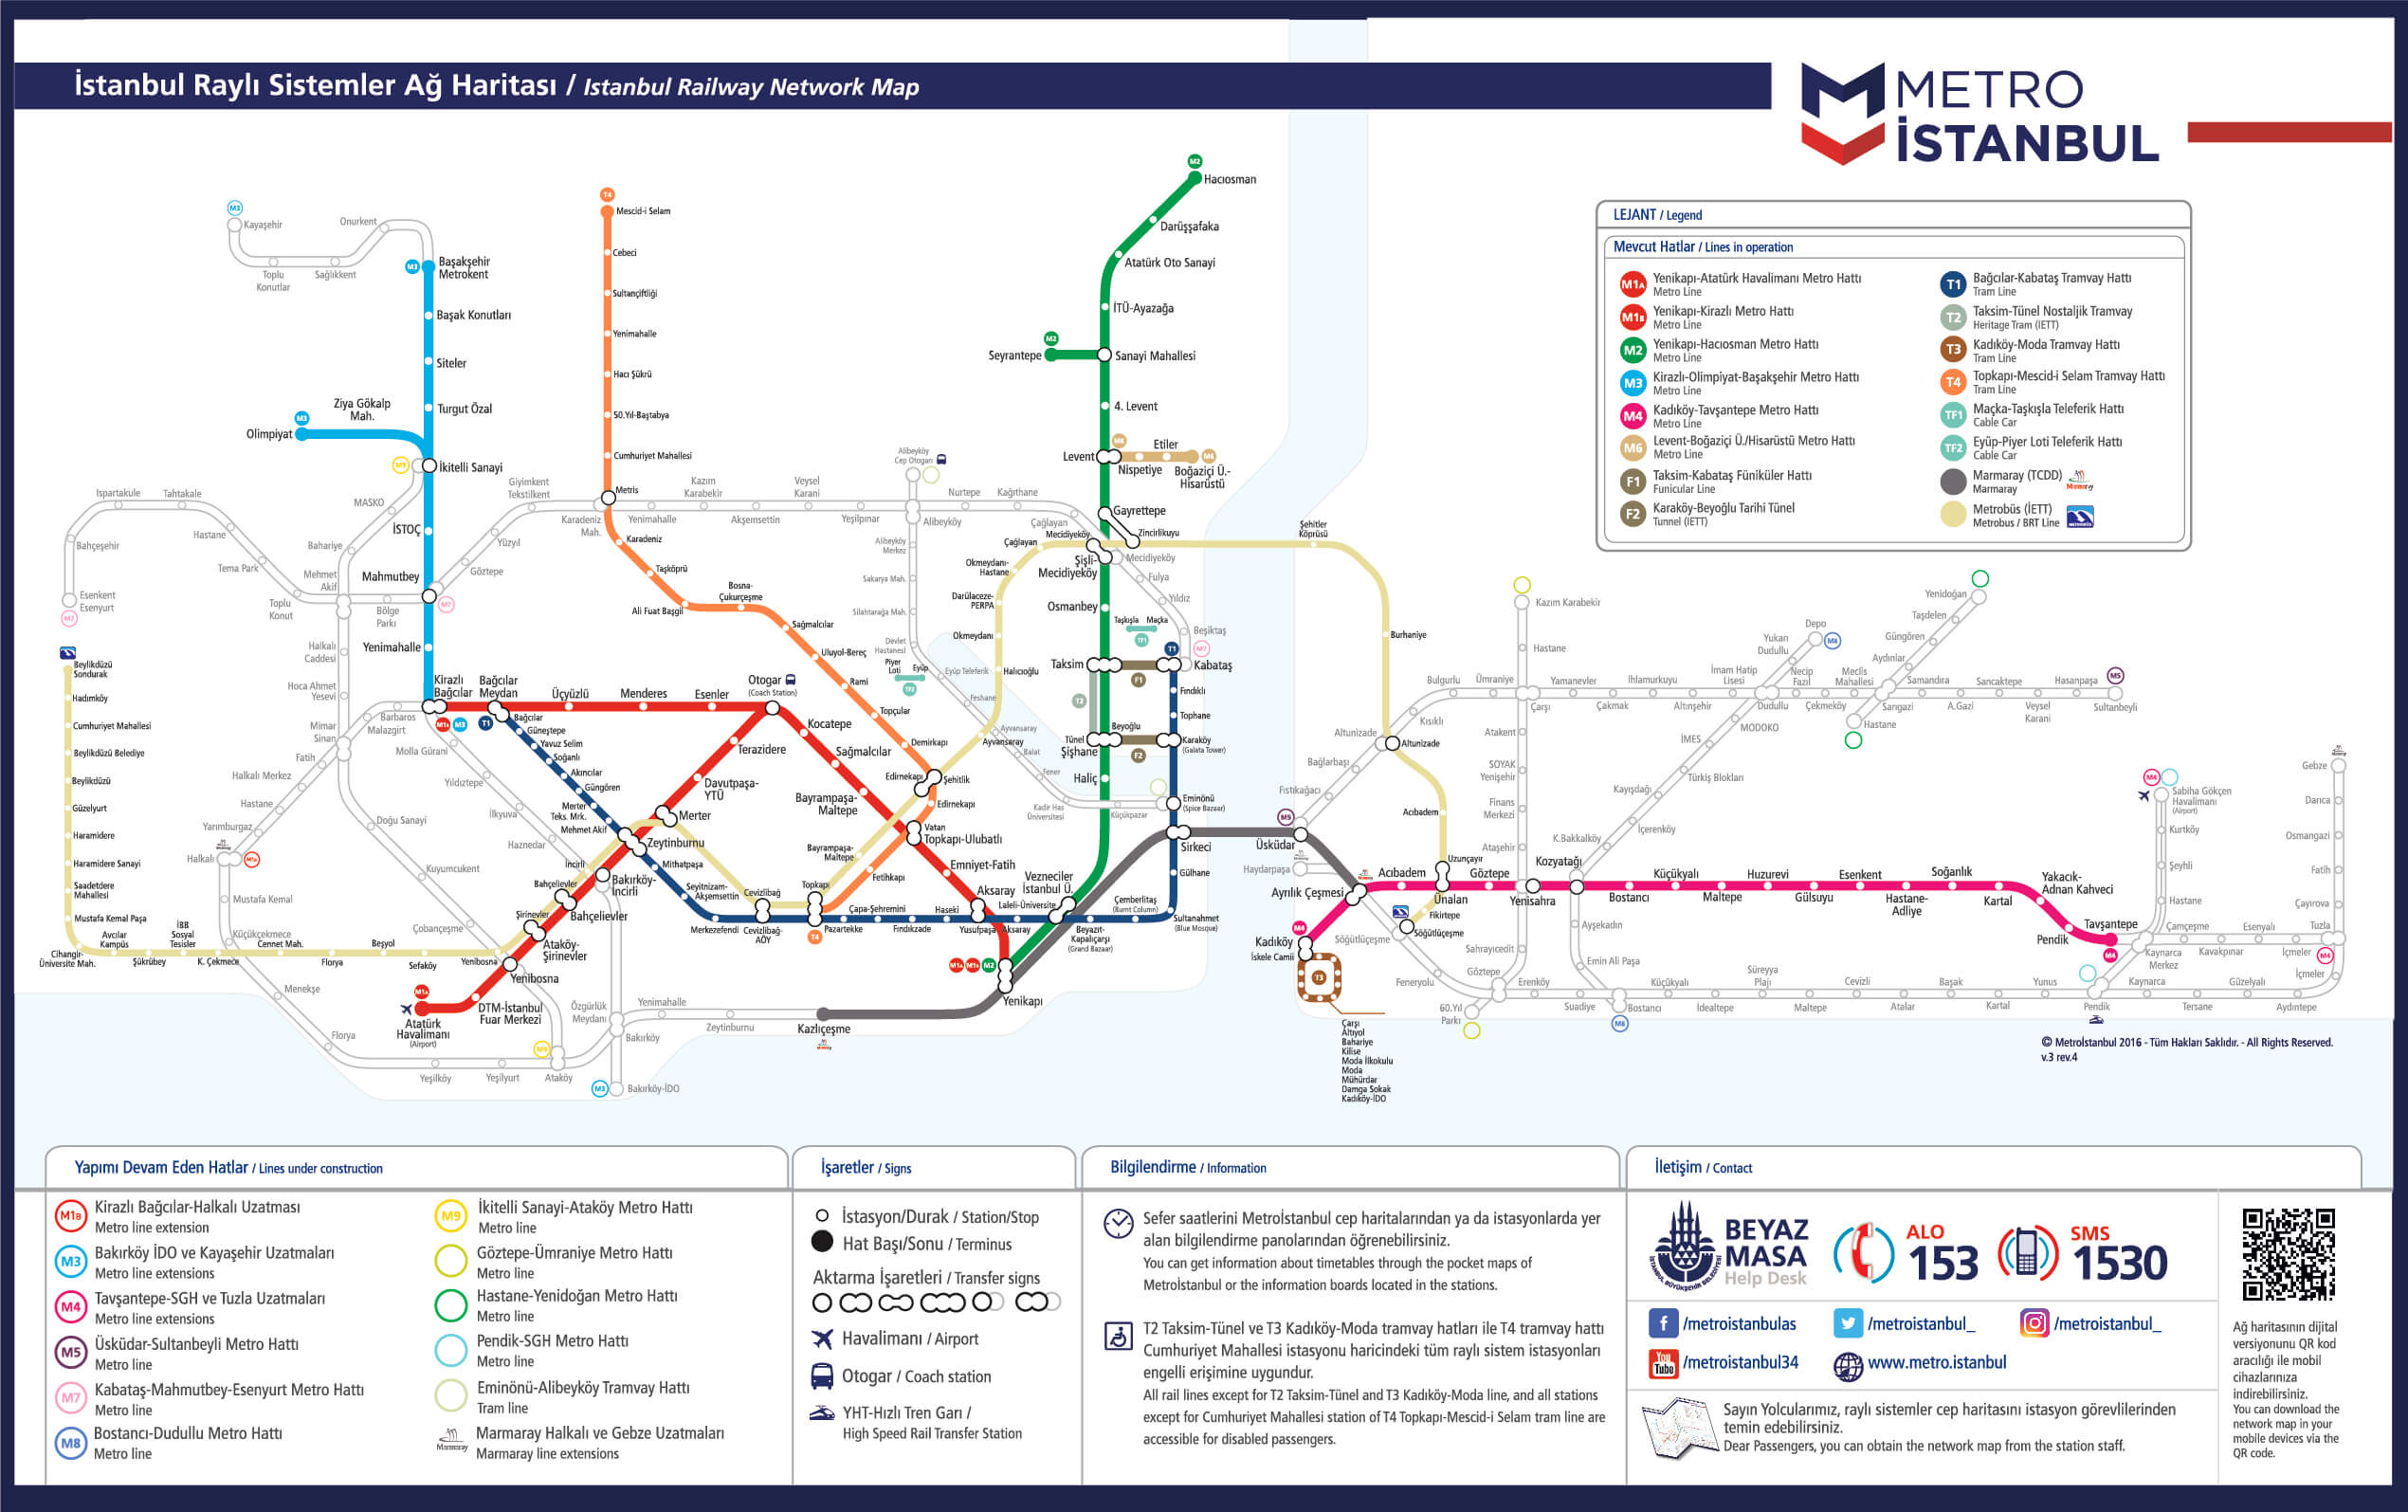 Izmir Subway Map.How To Use The Istanbul Metro A Complete Guide Property Turkey